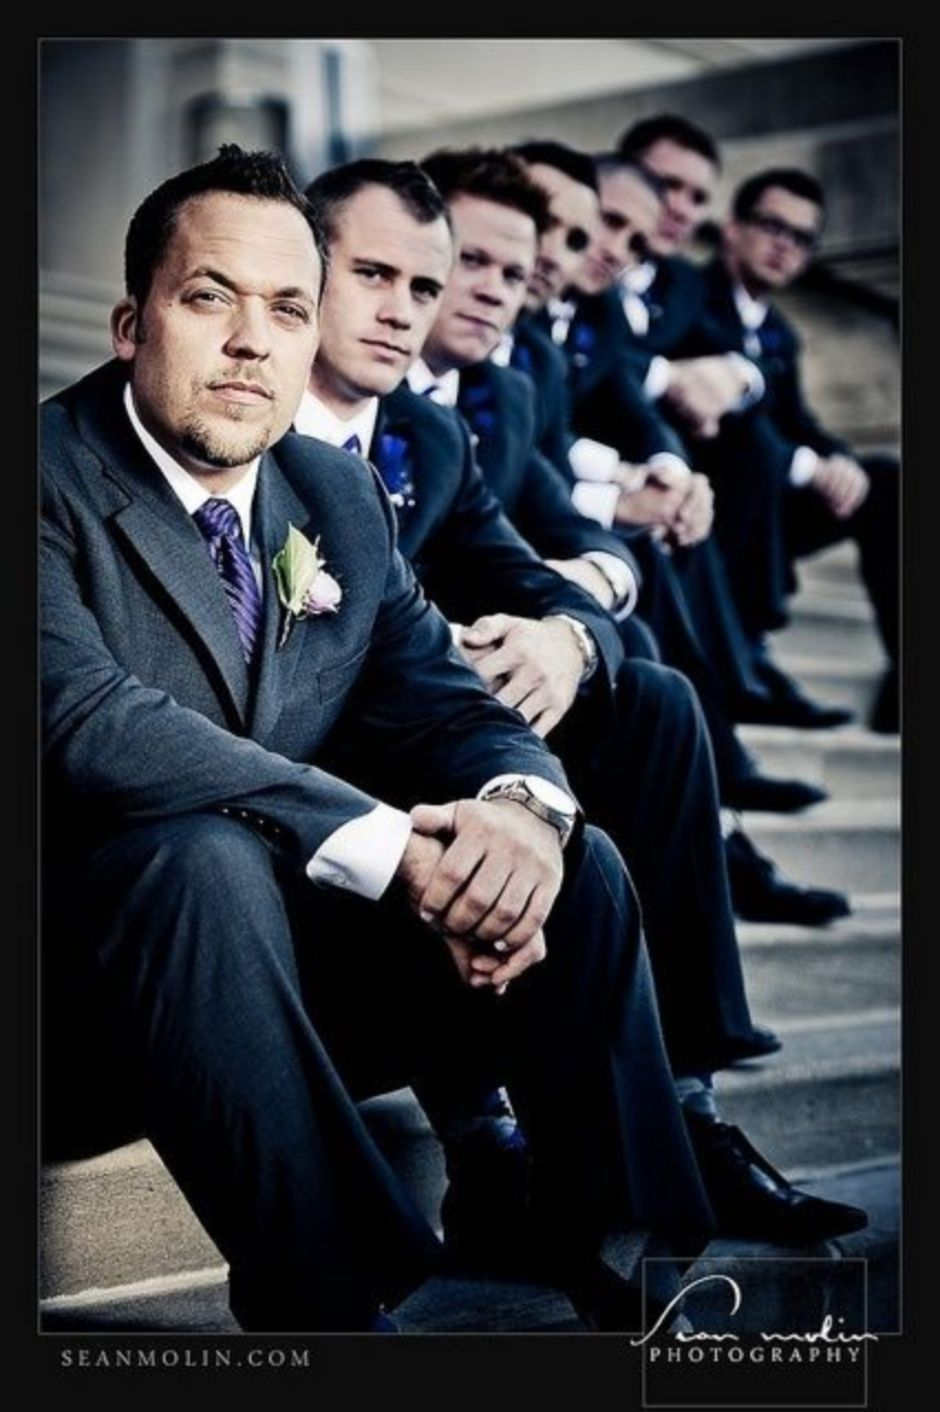 100+ Groomsmen Photos Poses Ideas You Can't Miss 123